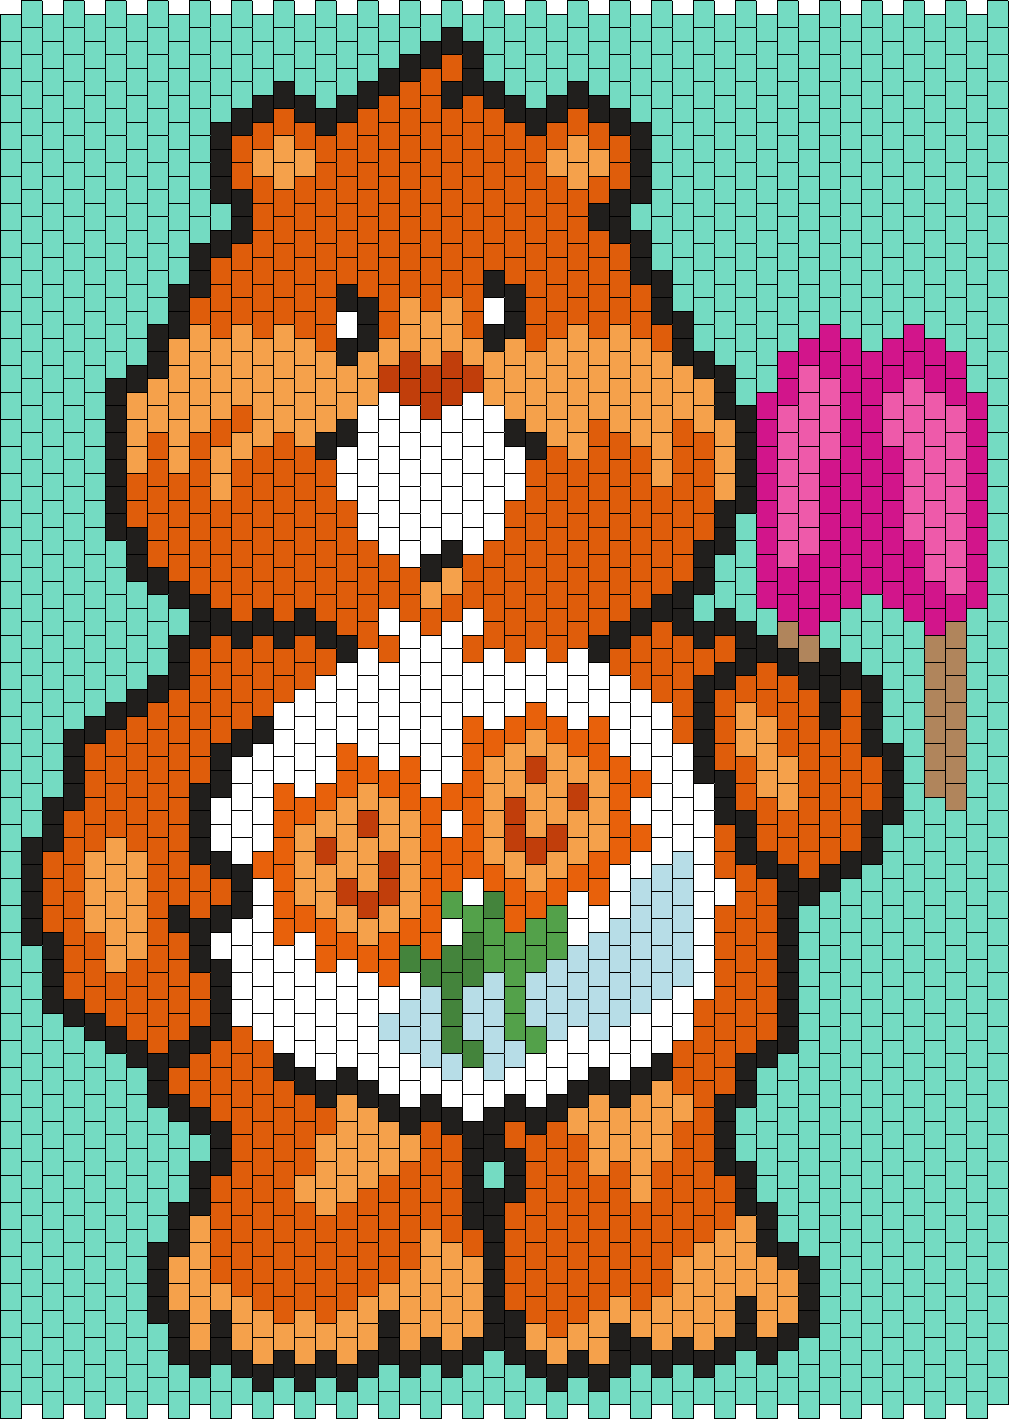 Friend Bear From The Care Bears Bead Pattern